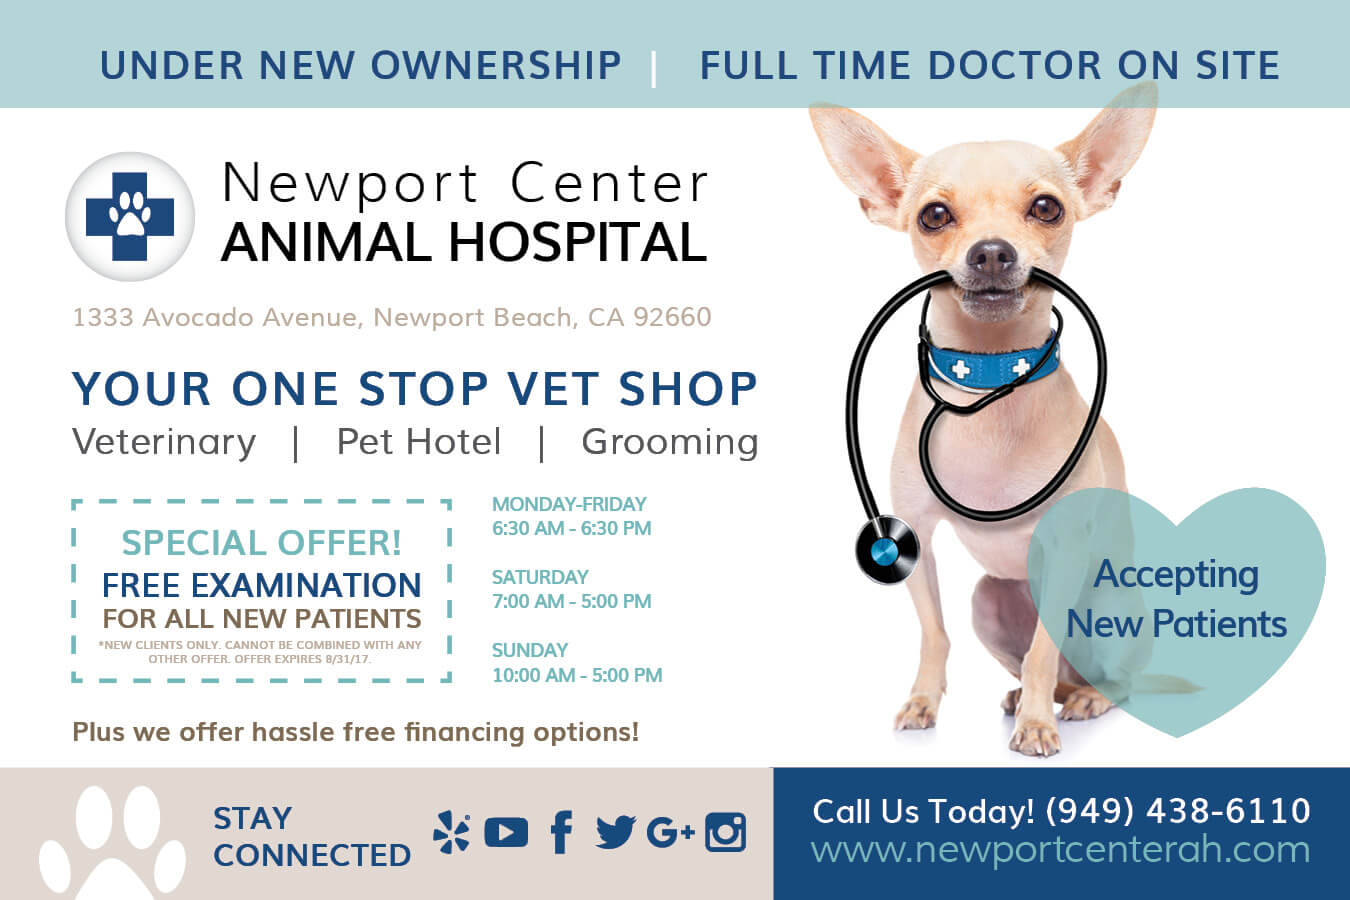 Newport Center Animal Hospital Specials Front   Animal Boarding, Veterinary Care and Hospital in Newport Beach